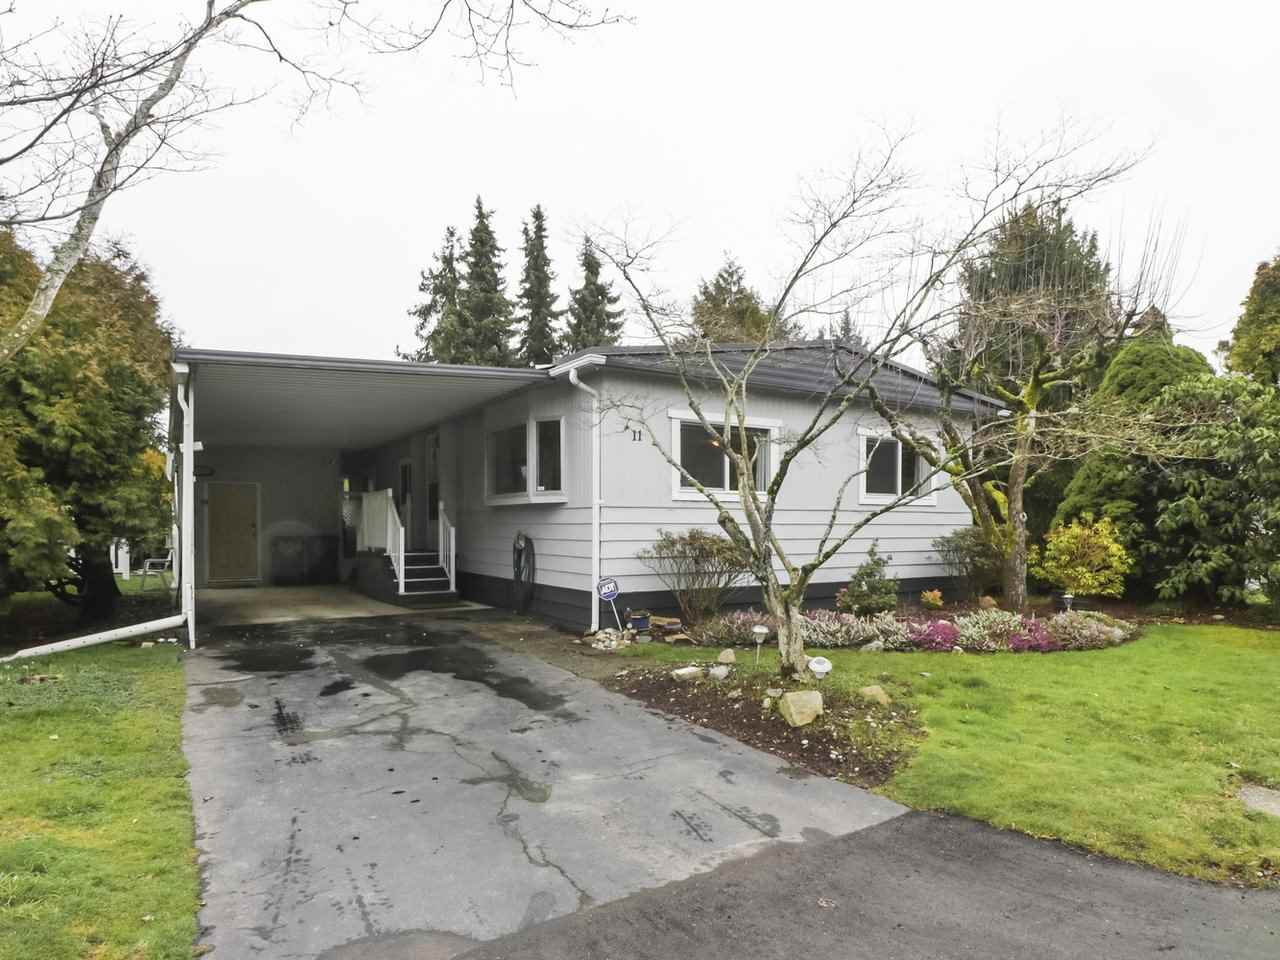 """Main Photo: 11 1840 160TH Street: White Rock Manufactured Home for sale in """"BREAKAWAY BAYS"""" (South Surrey White Rock)  : MLS®# R2441669"""